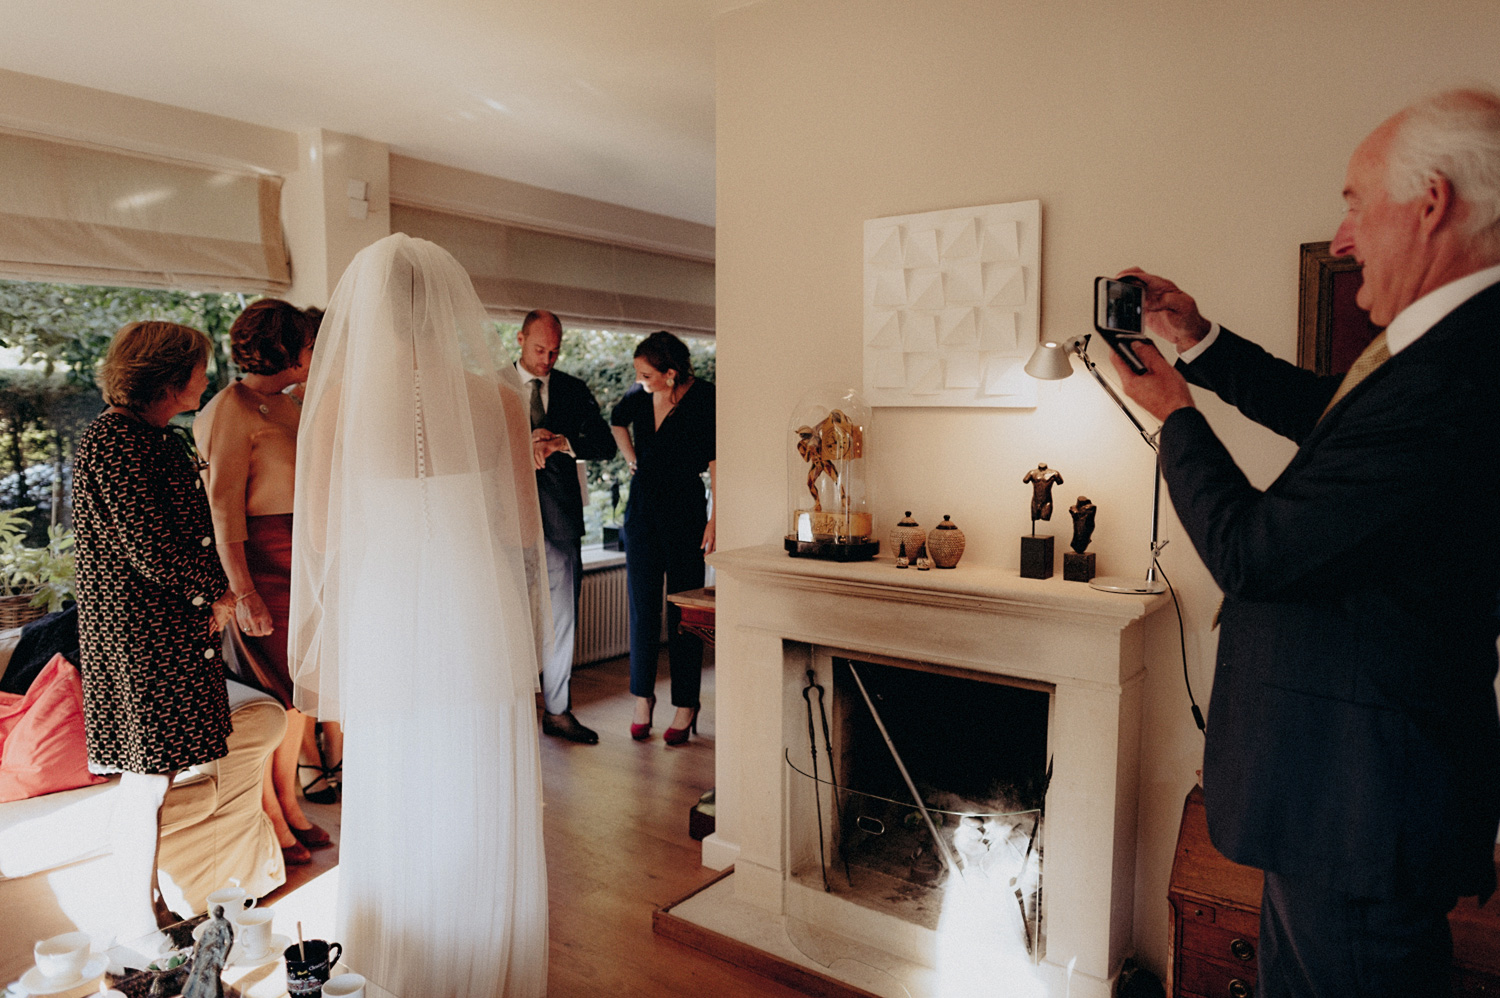 Weddings guest taking photo of bride with veil